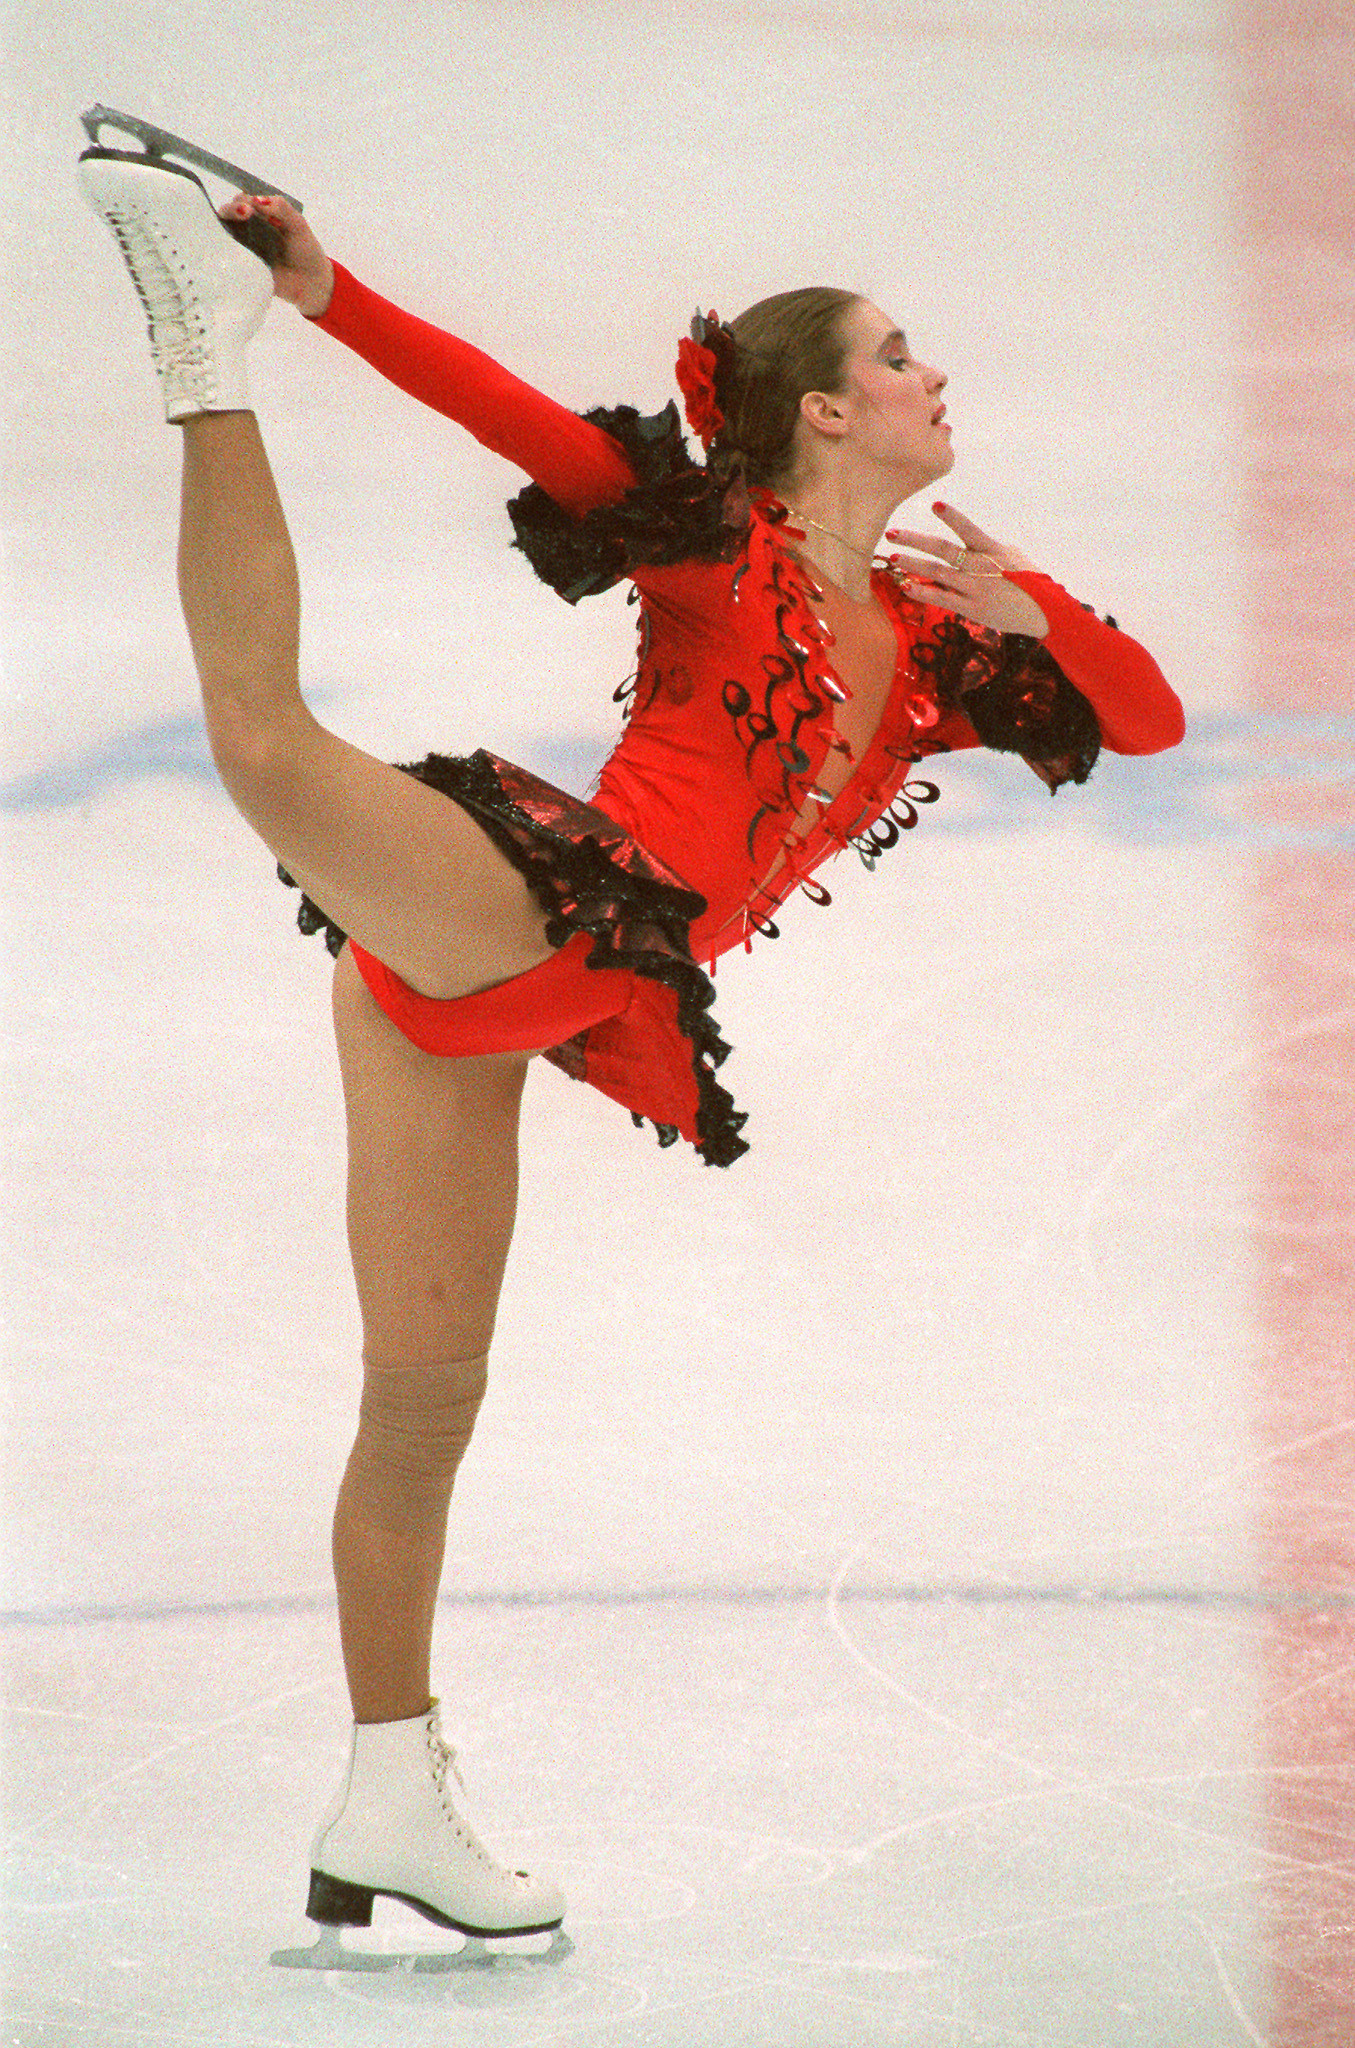 The change in the rules ahead of the 1994 Lillehammer Winter Games allowed the return of professional former Olympic skaters such as Germany's Katarina Witt - but not everyone in the sport was happy about it ©Getty Images